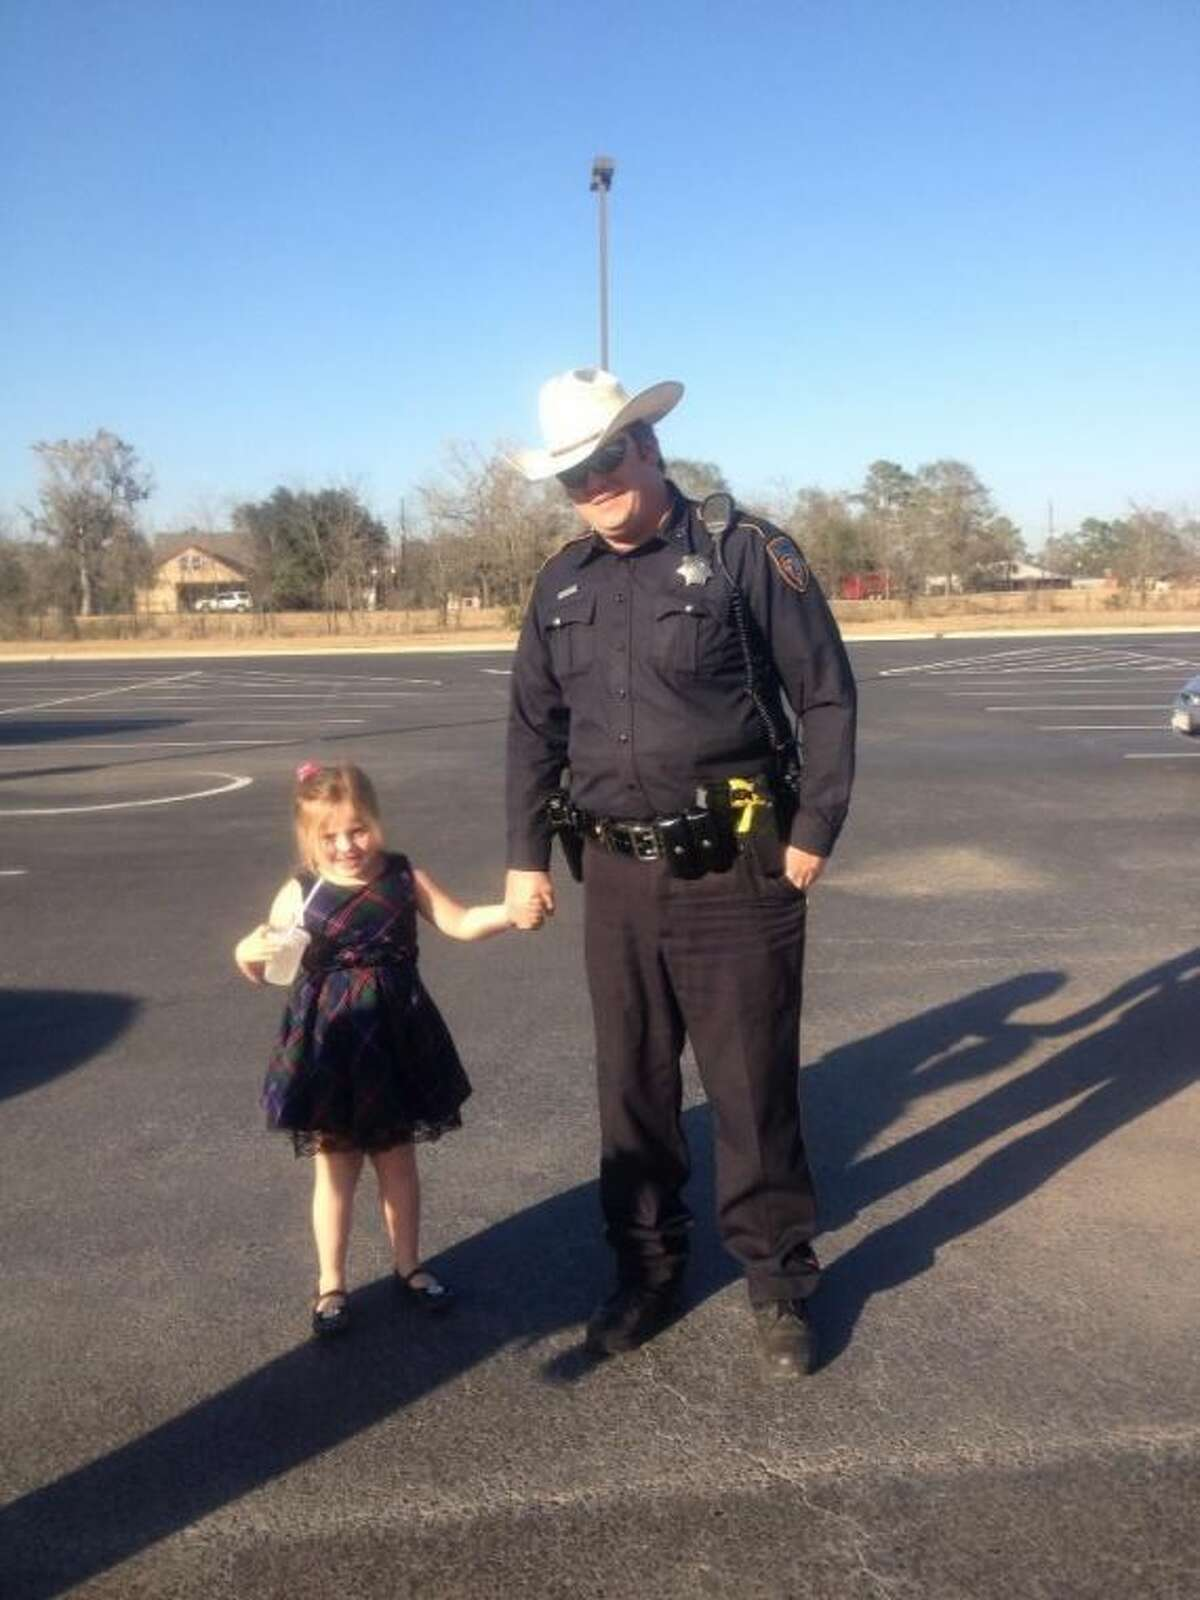 Harris County Sheriff's Office Deputy Brian Bevil spends time with his daughter, Lexi.